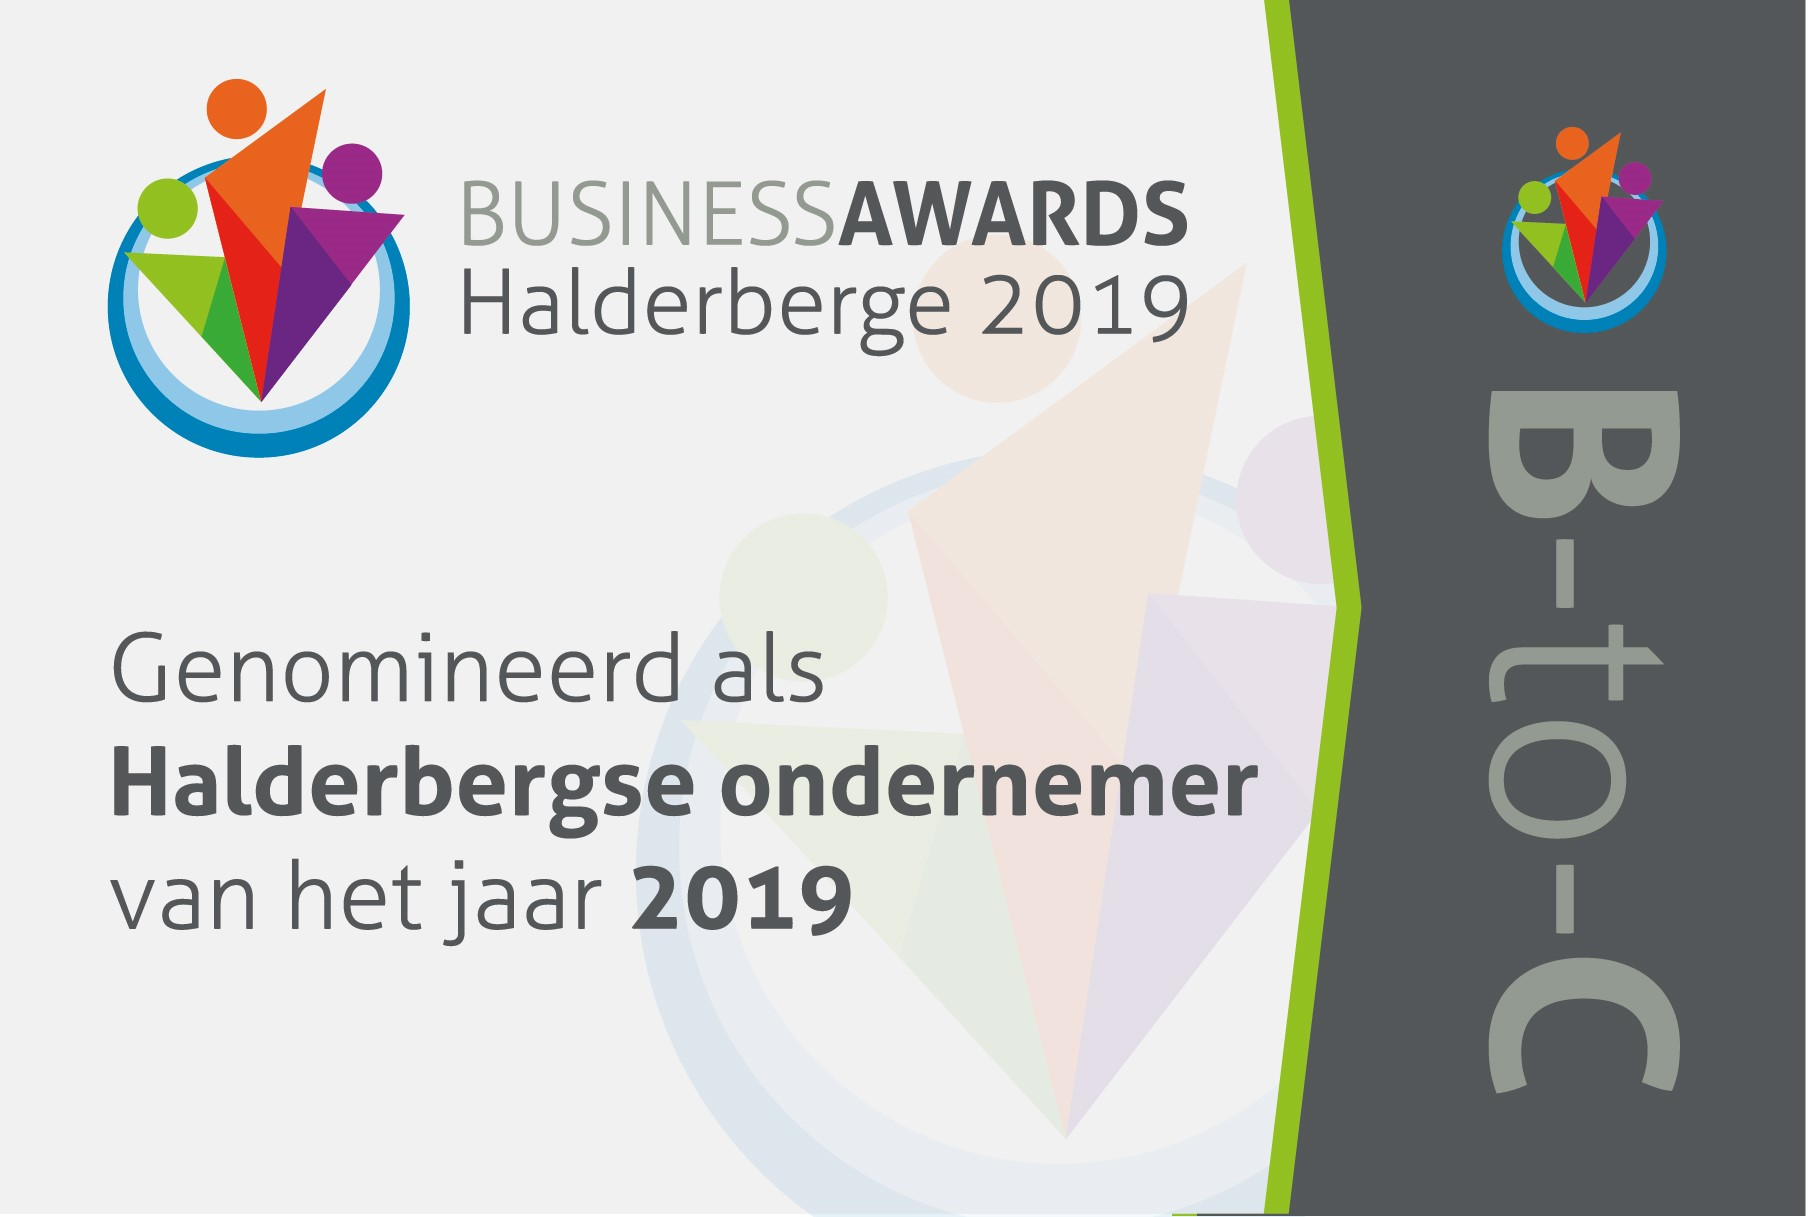 Business Awards Halderberge 2019